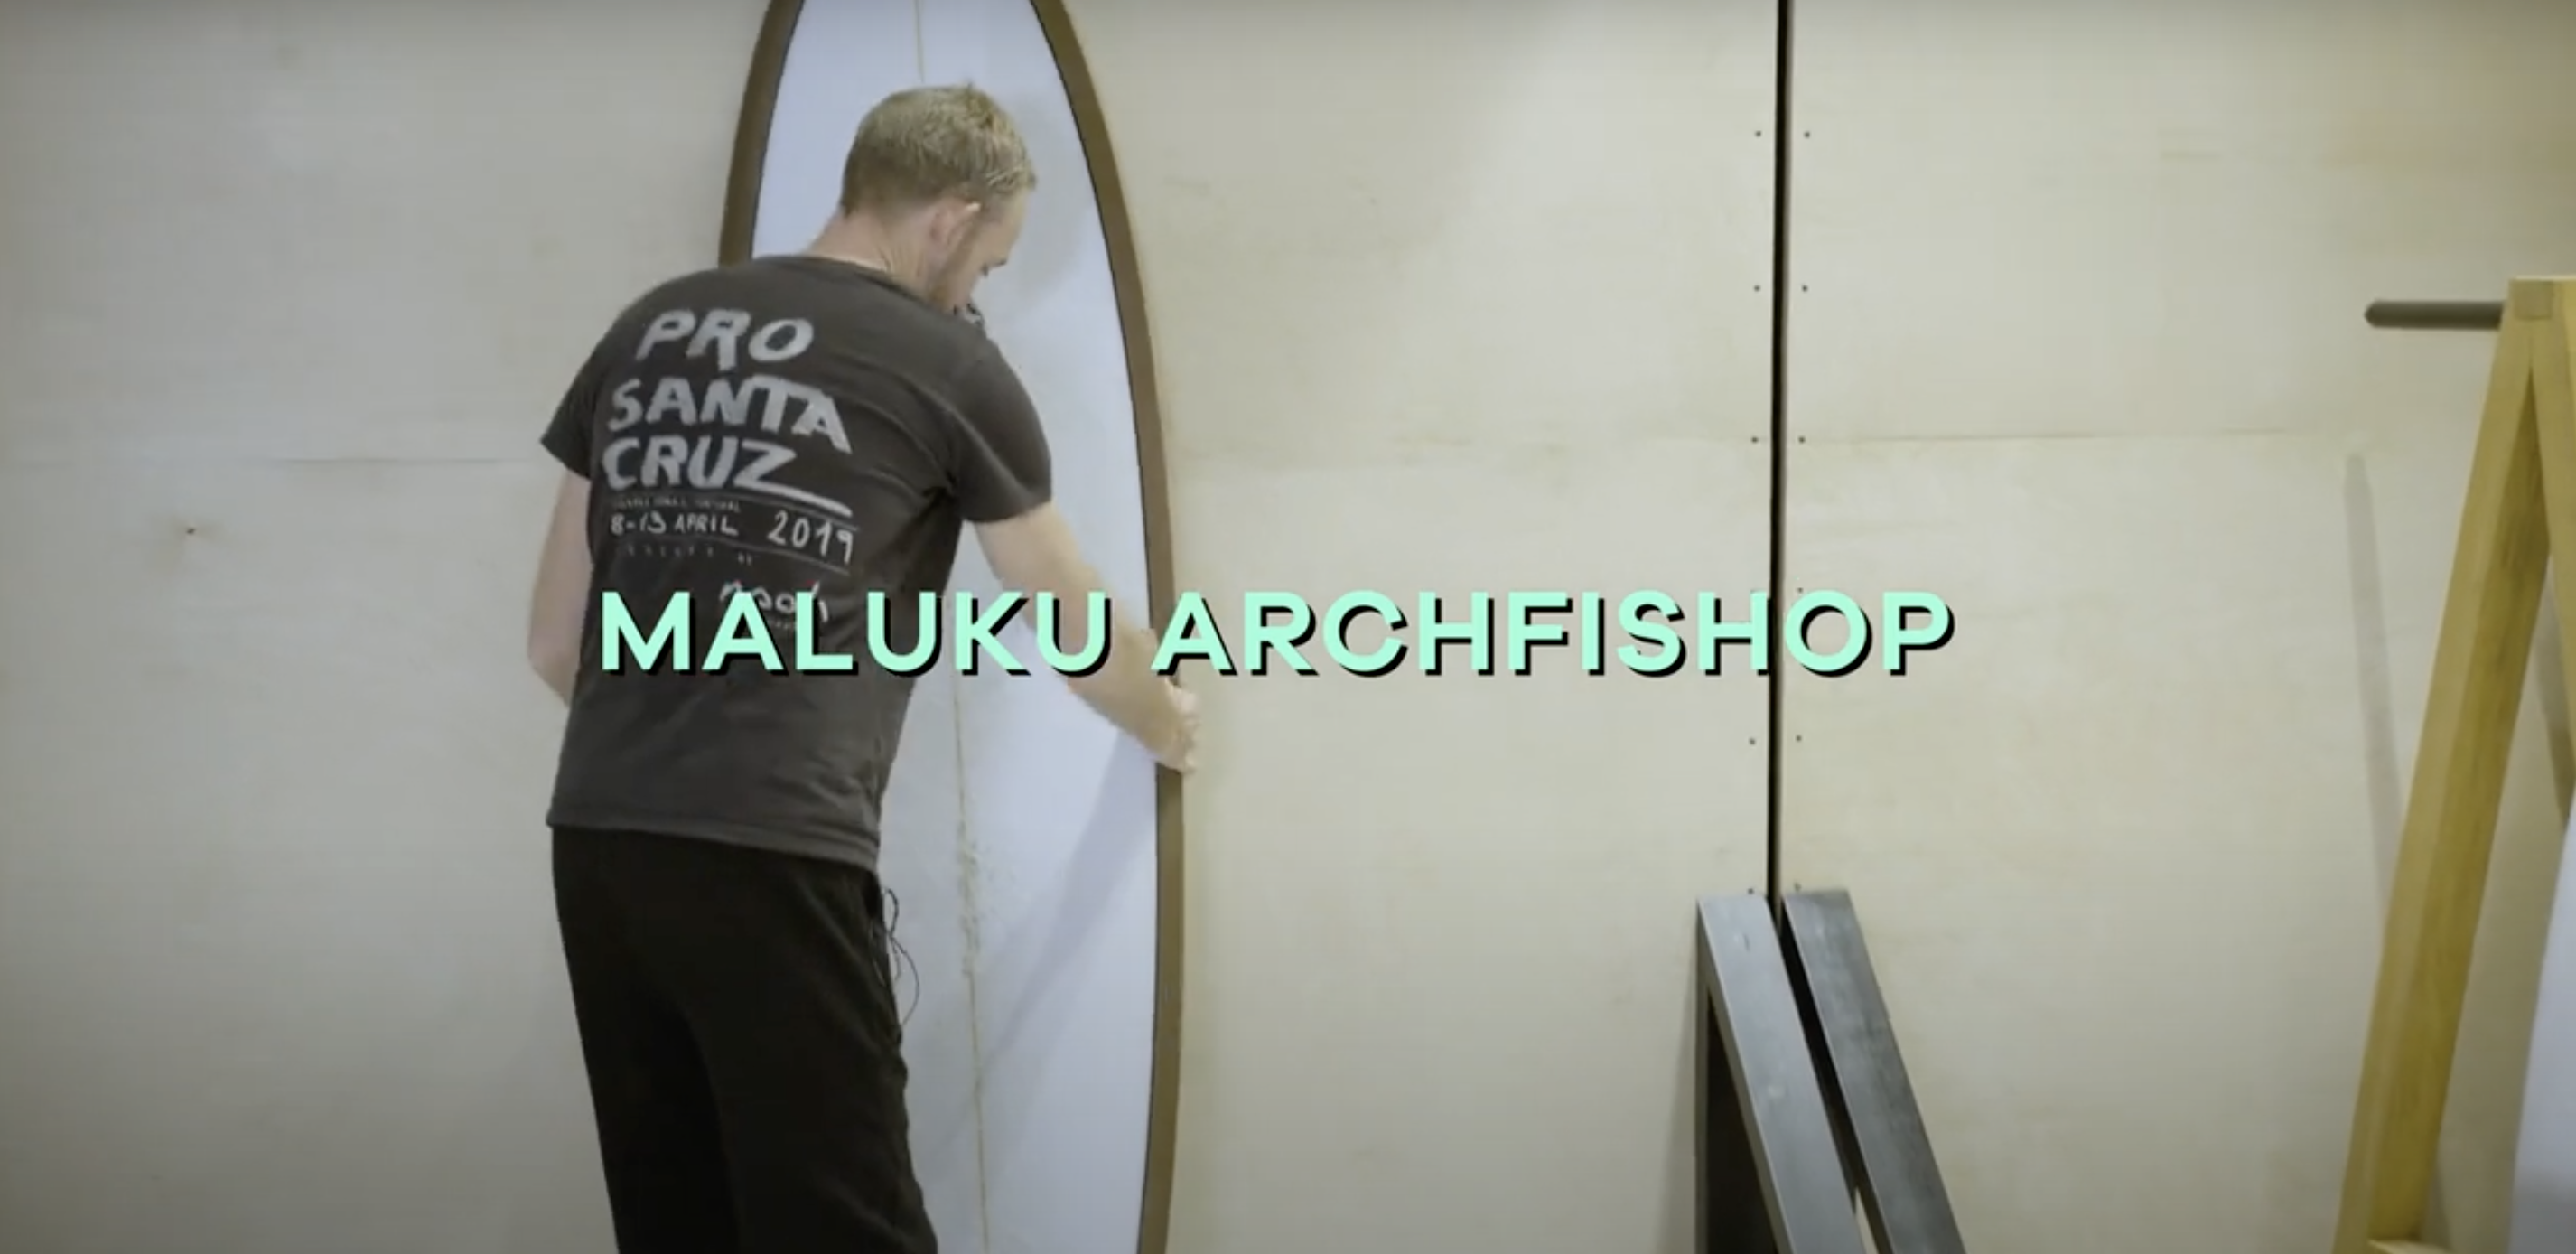 Maluku Archfishop Surfboard Review | The Test Tub